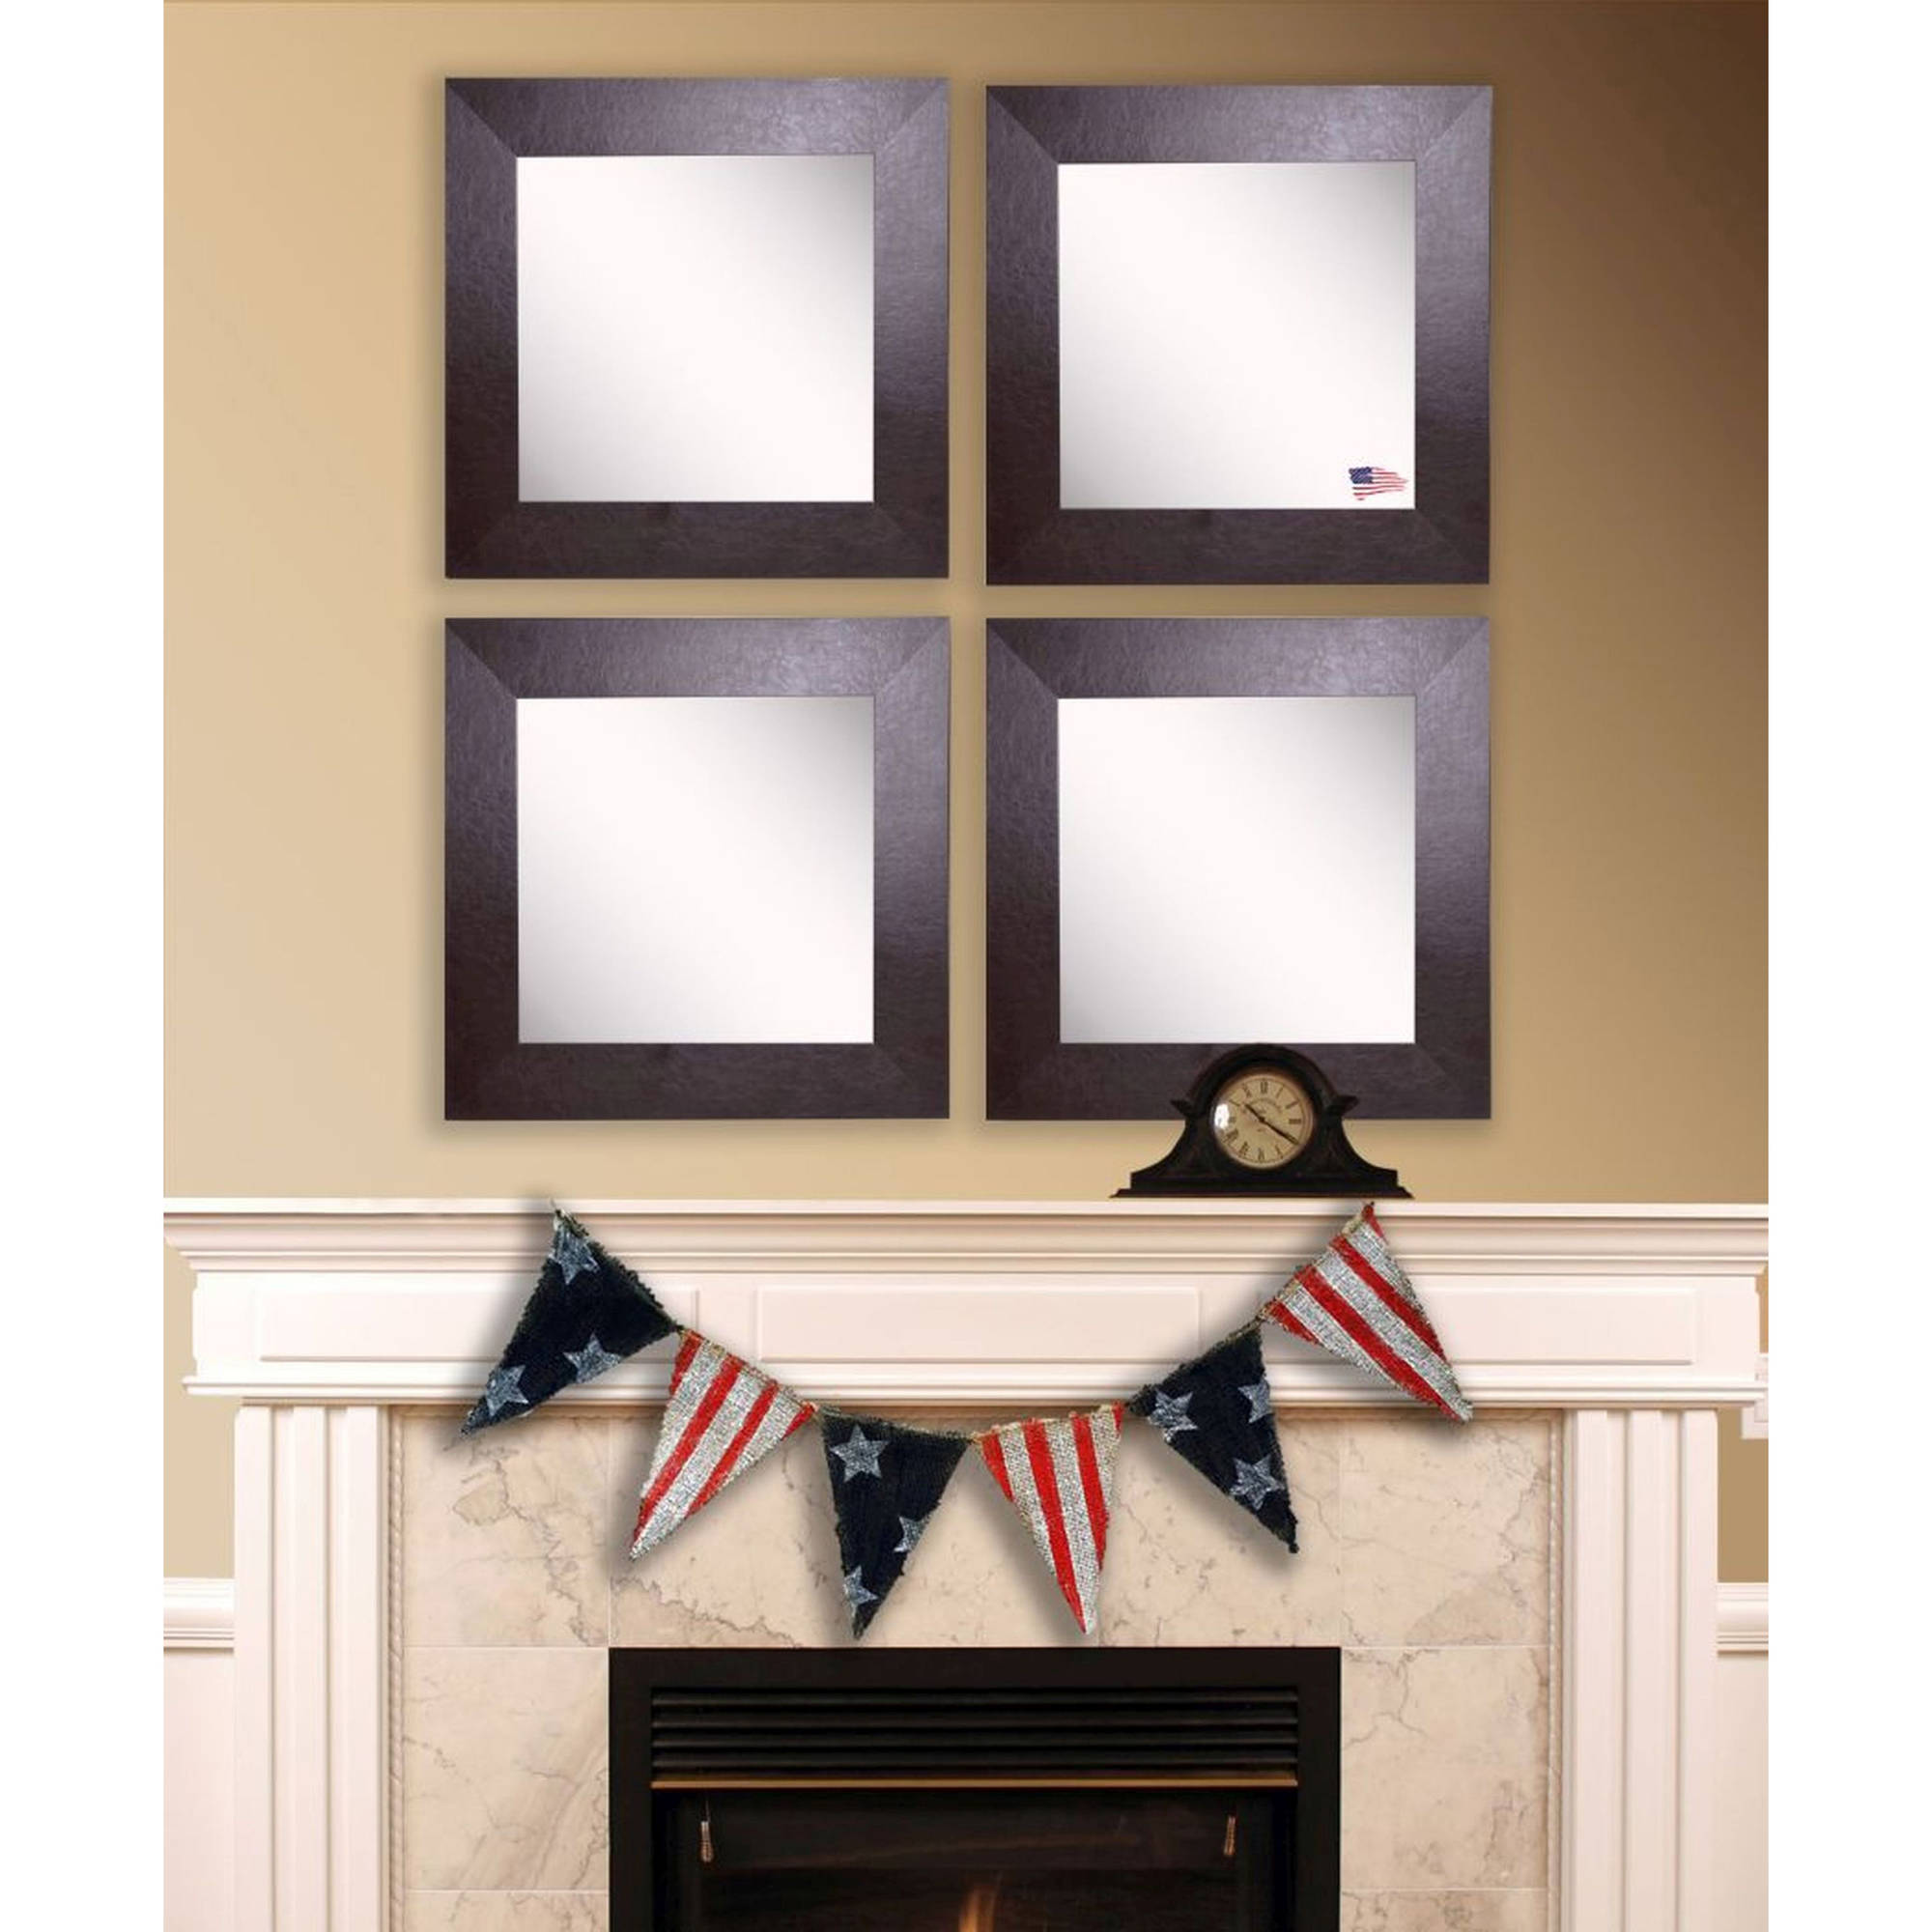 Rayne Glossy White Square Wall Mirror, Set of 4